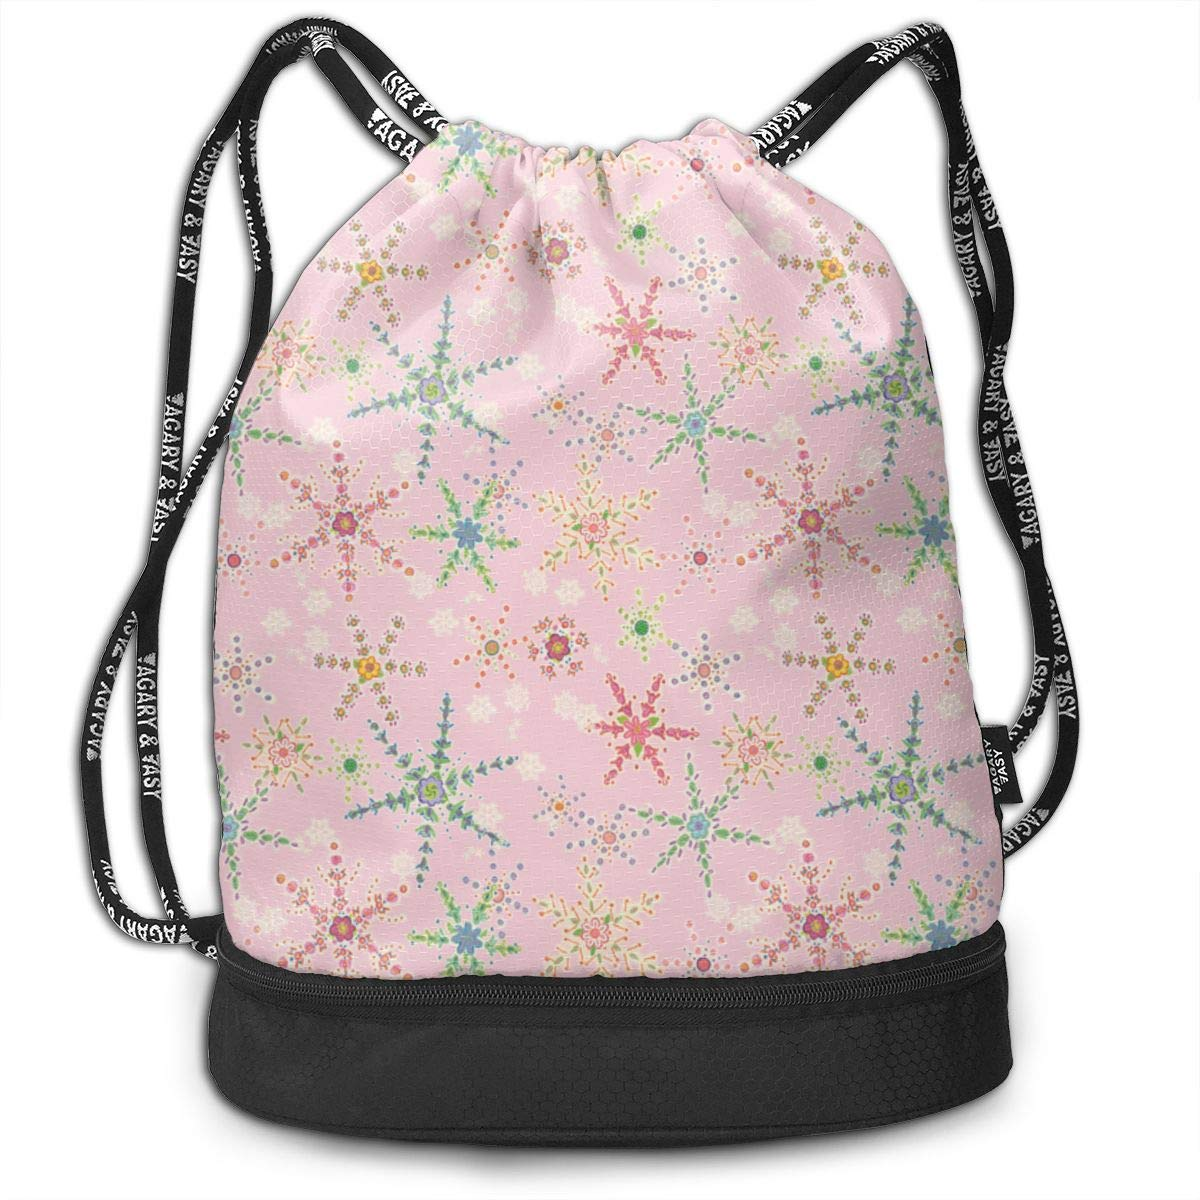 Snowflower Pink Drawstring Backpack Sports Athletic Gym Cinch Sack String Storage Bags for Hiking Travel Beach